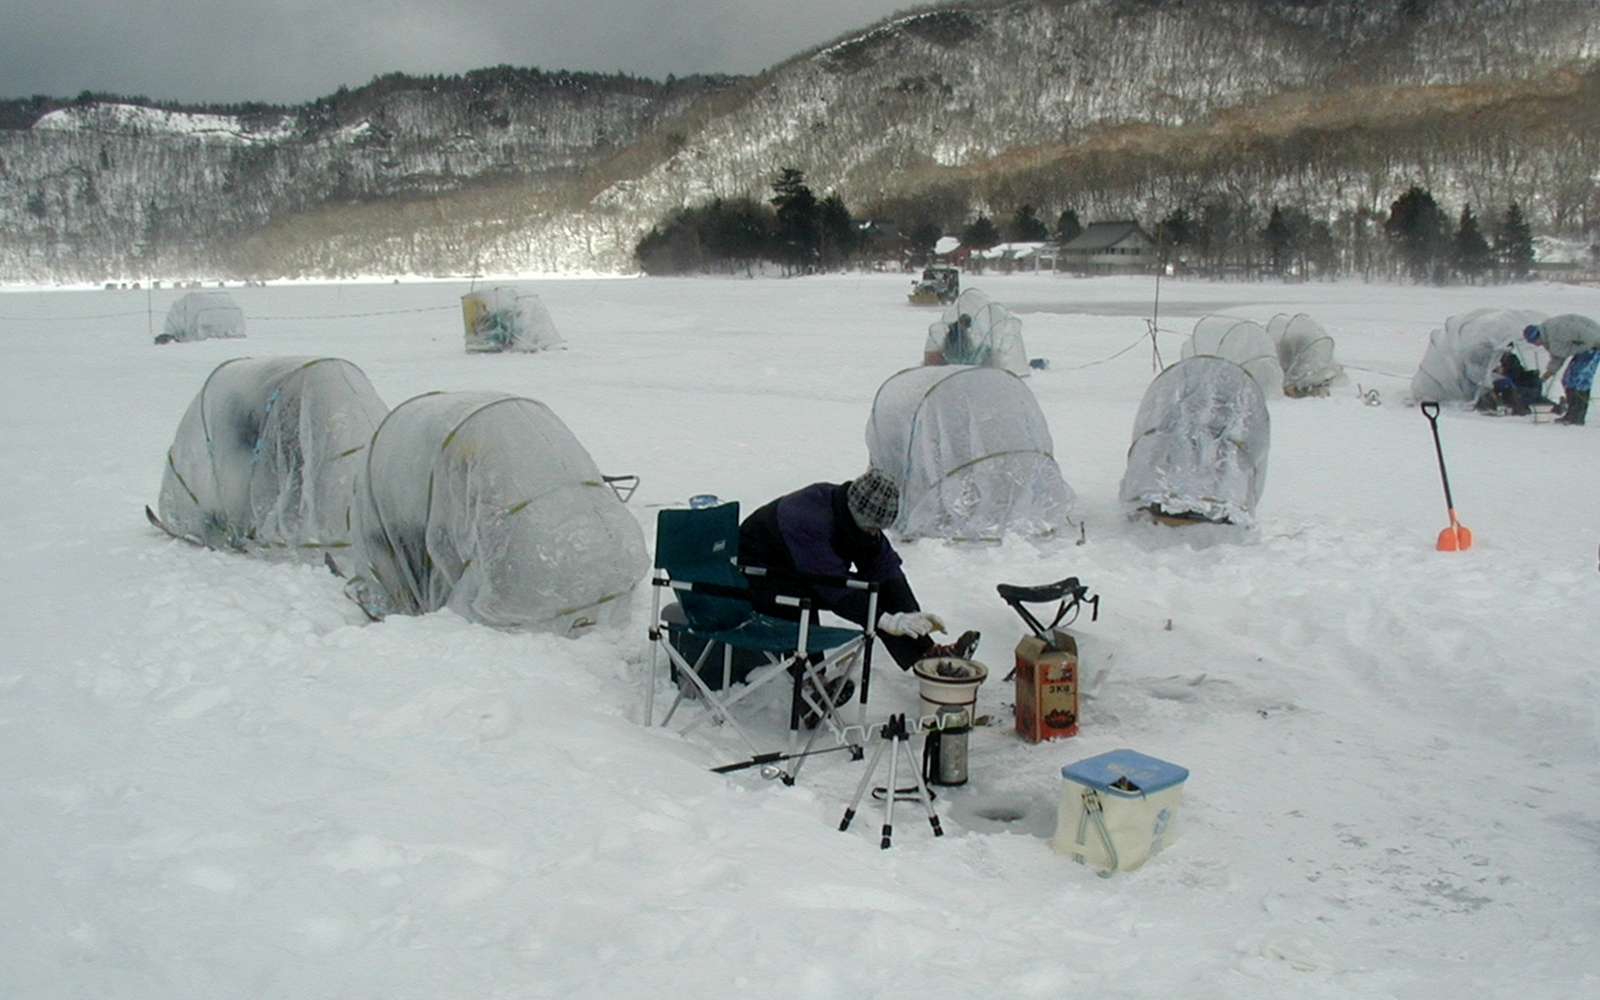 Ice fishing on Ōnuma 001.jpg